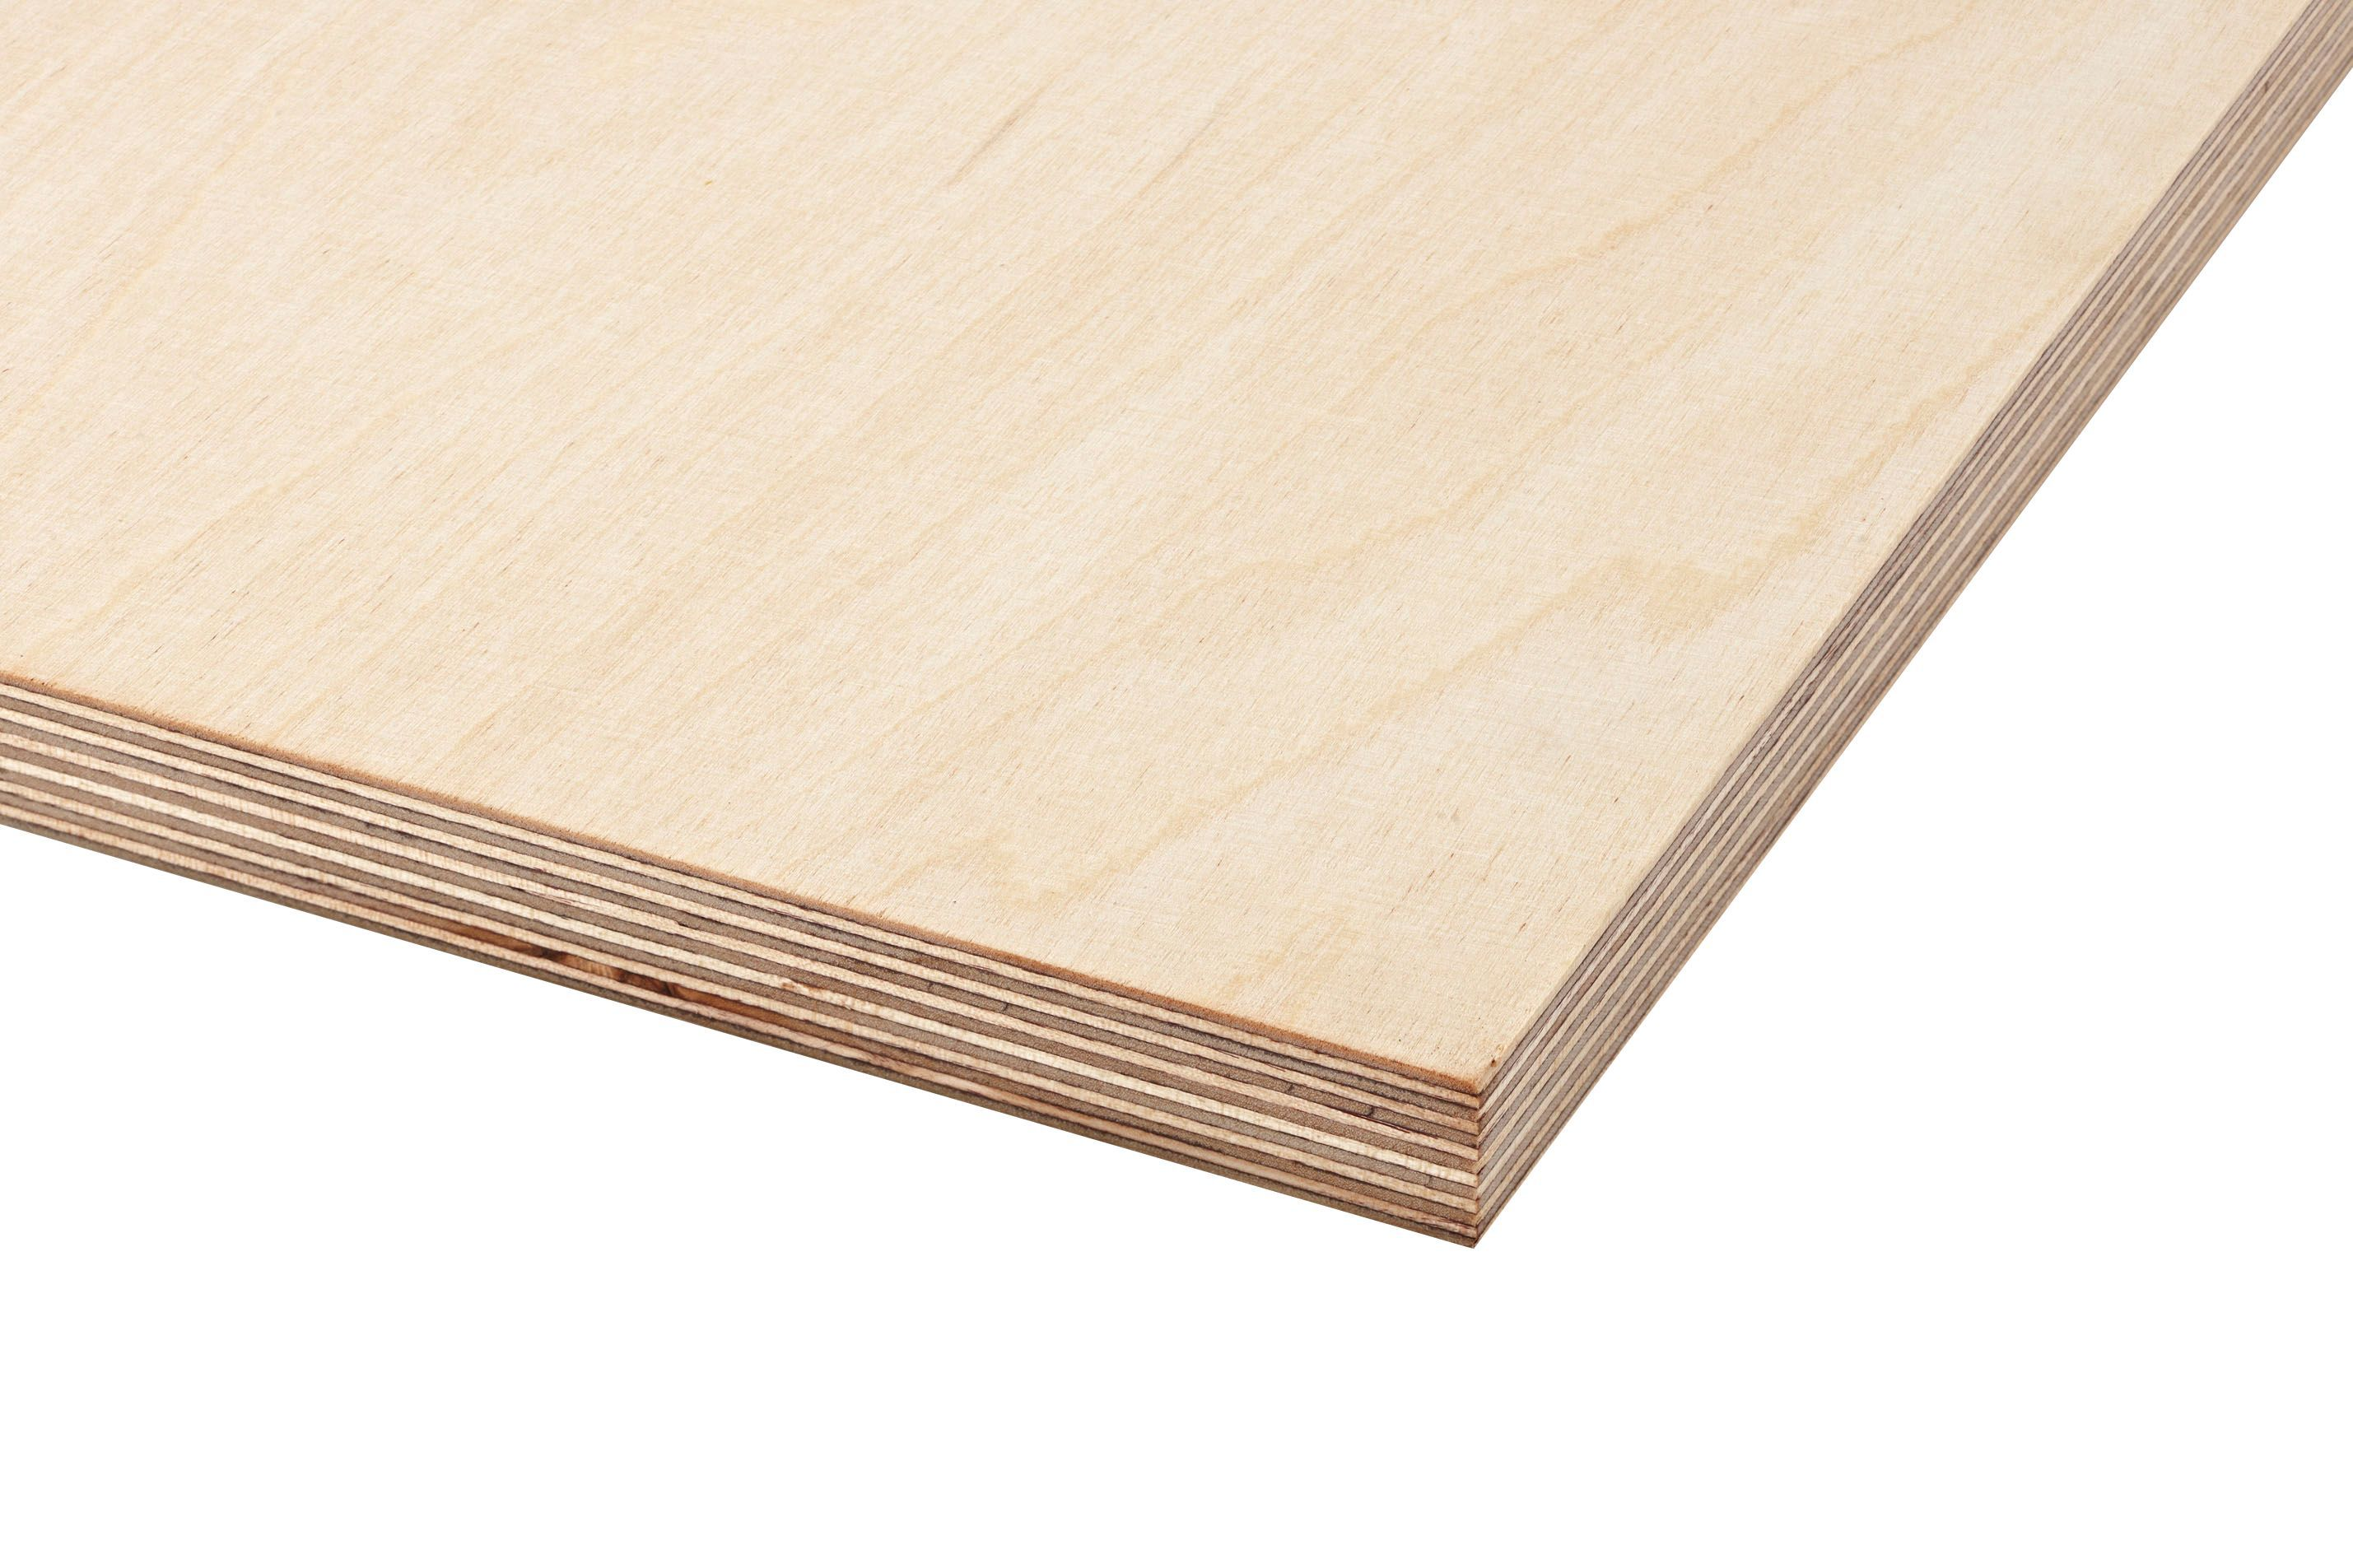 18mm Betonplex Birch Plywood Th 18mm W 1220mm L 2440mm Departments